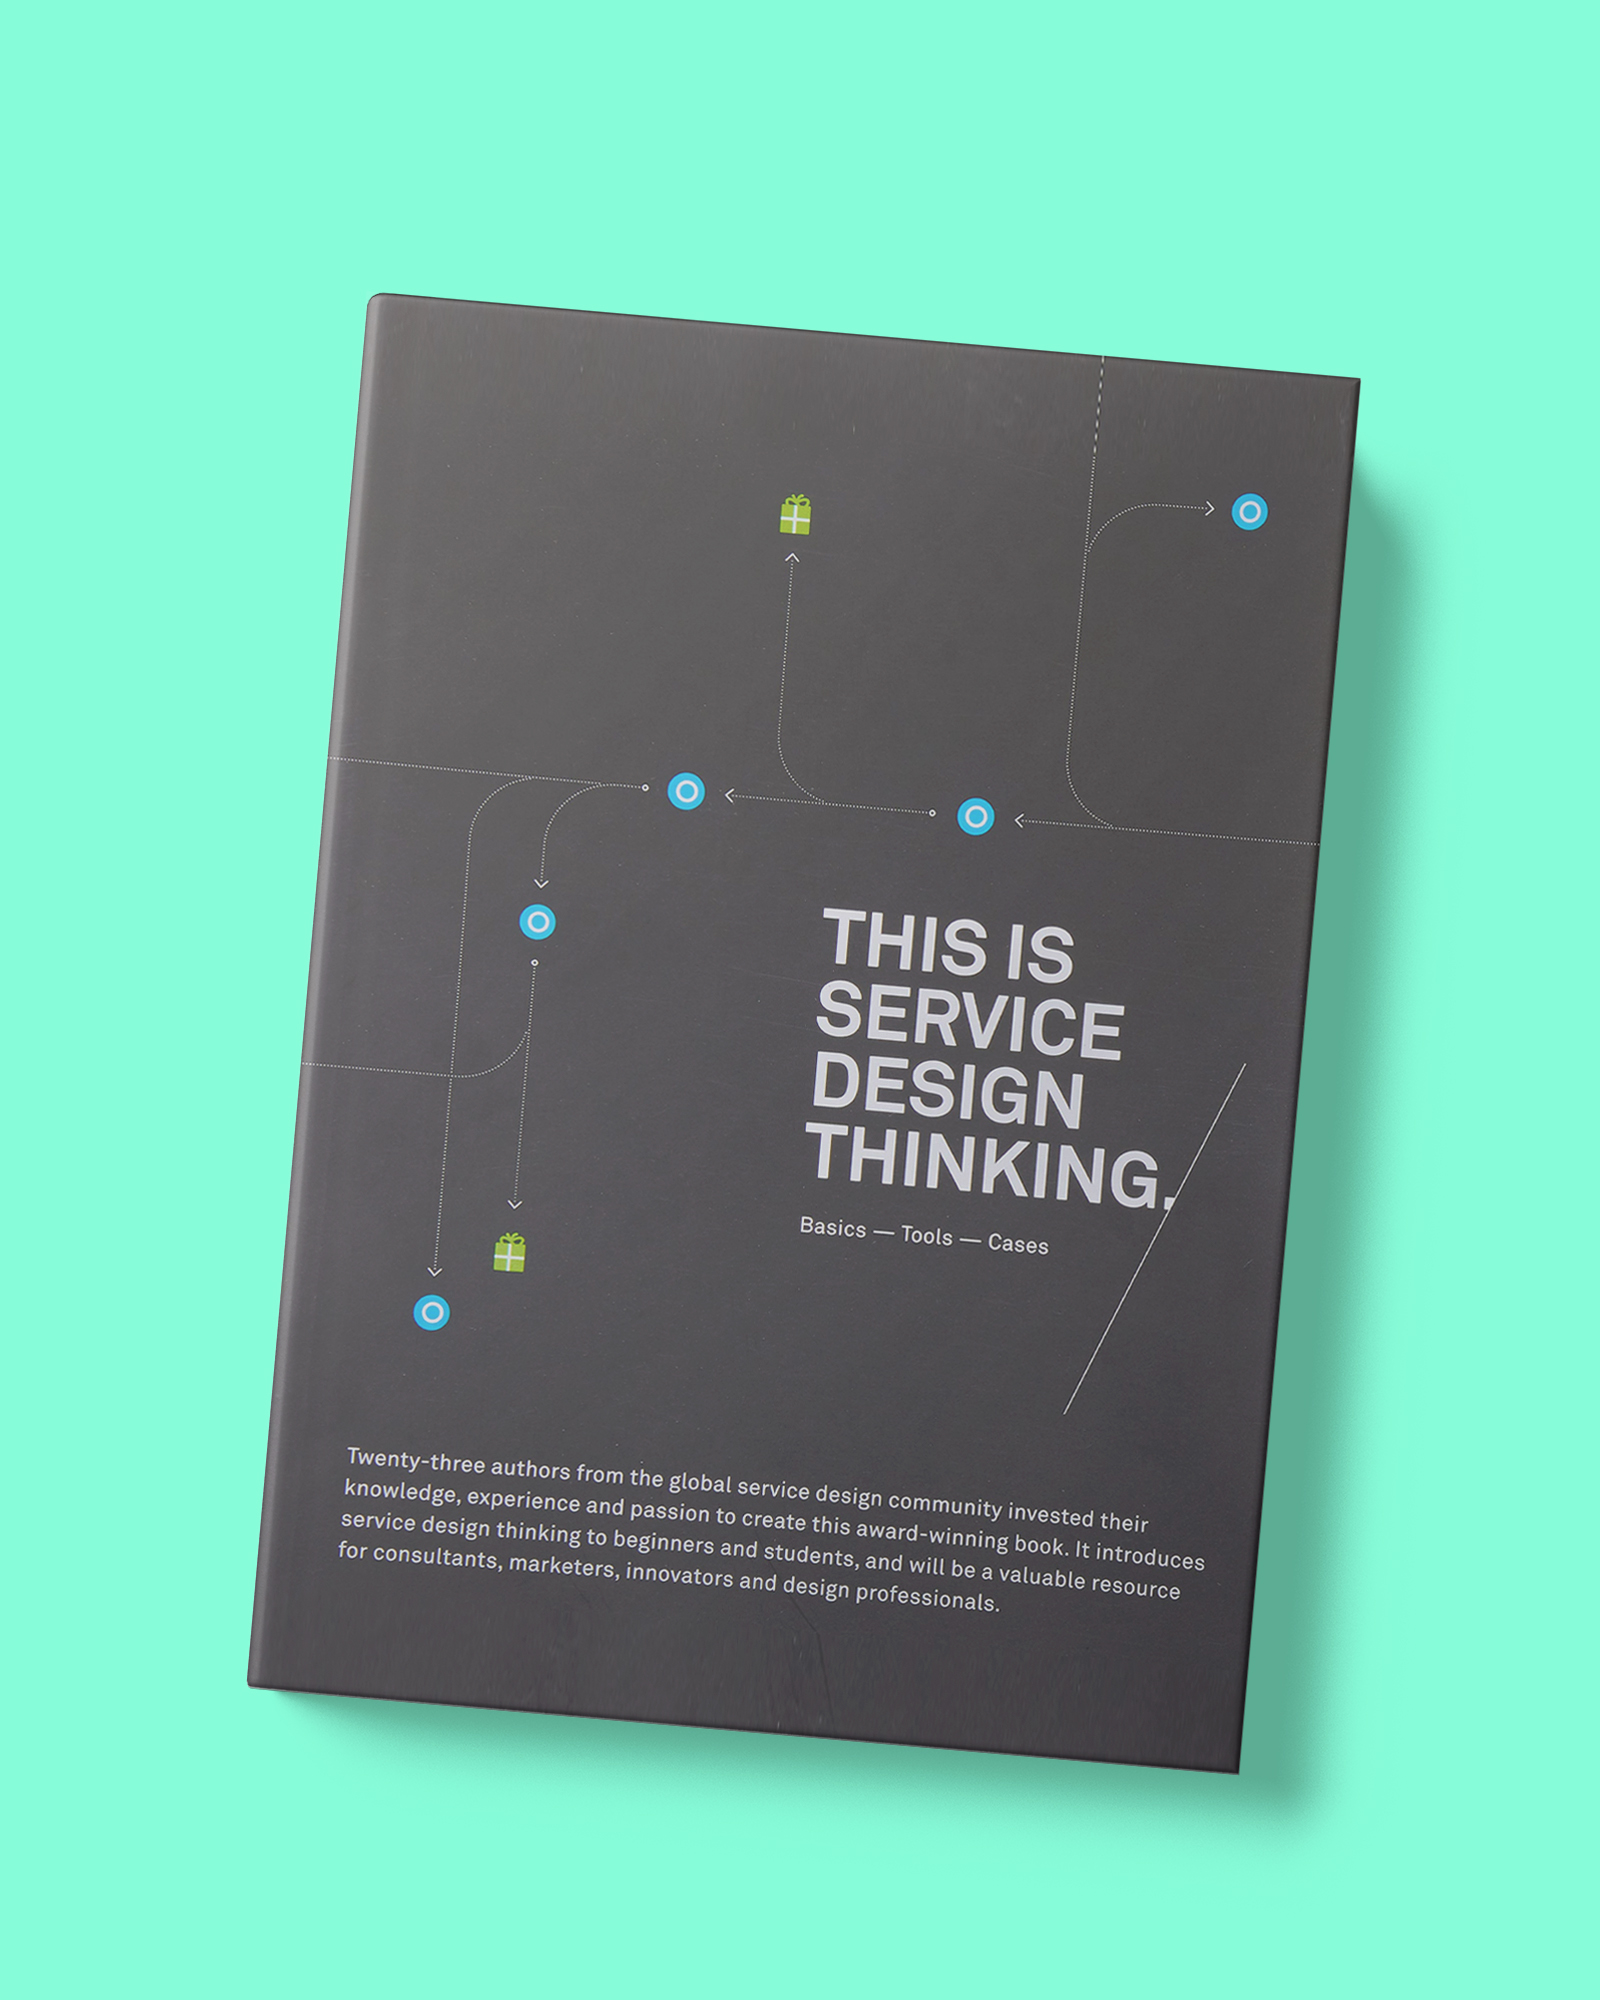 TDC | Behavior design - Book_This is Service Design Thinking- Basics, Tools, Cases